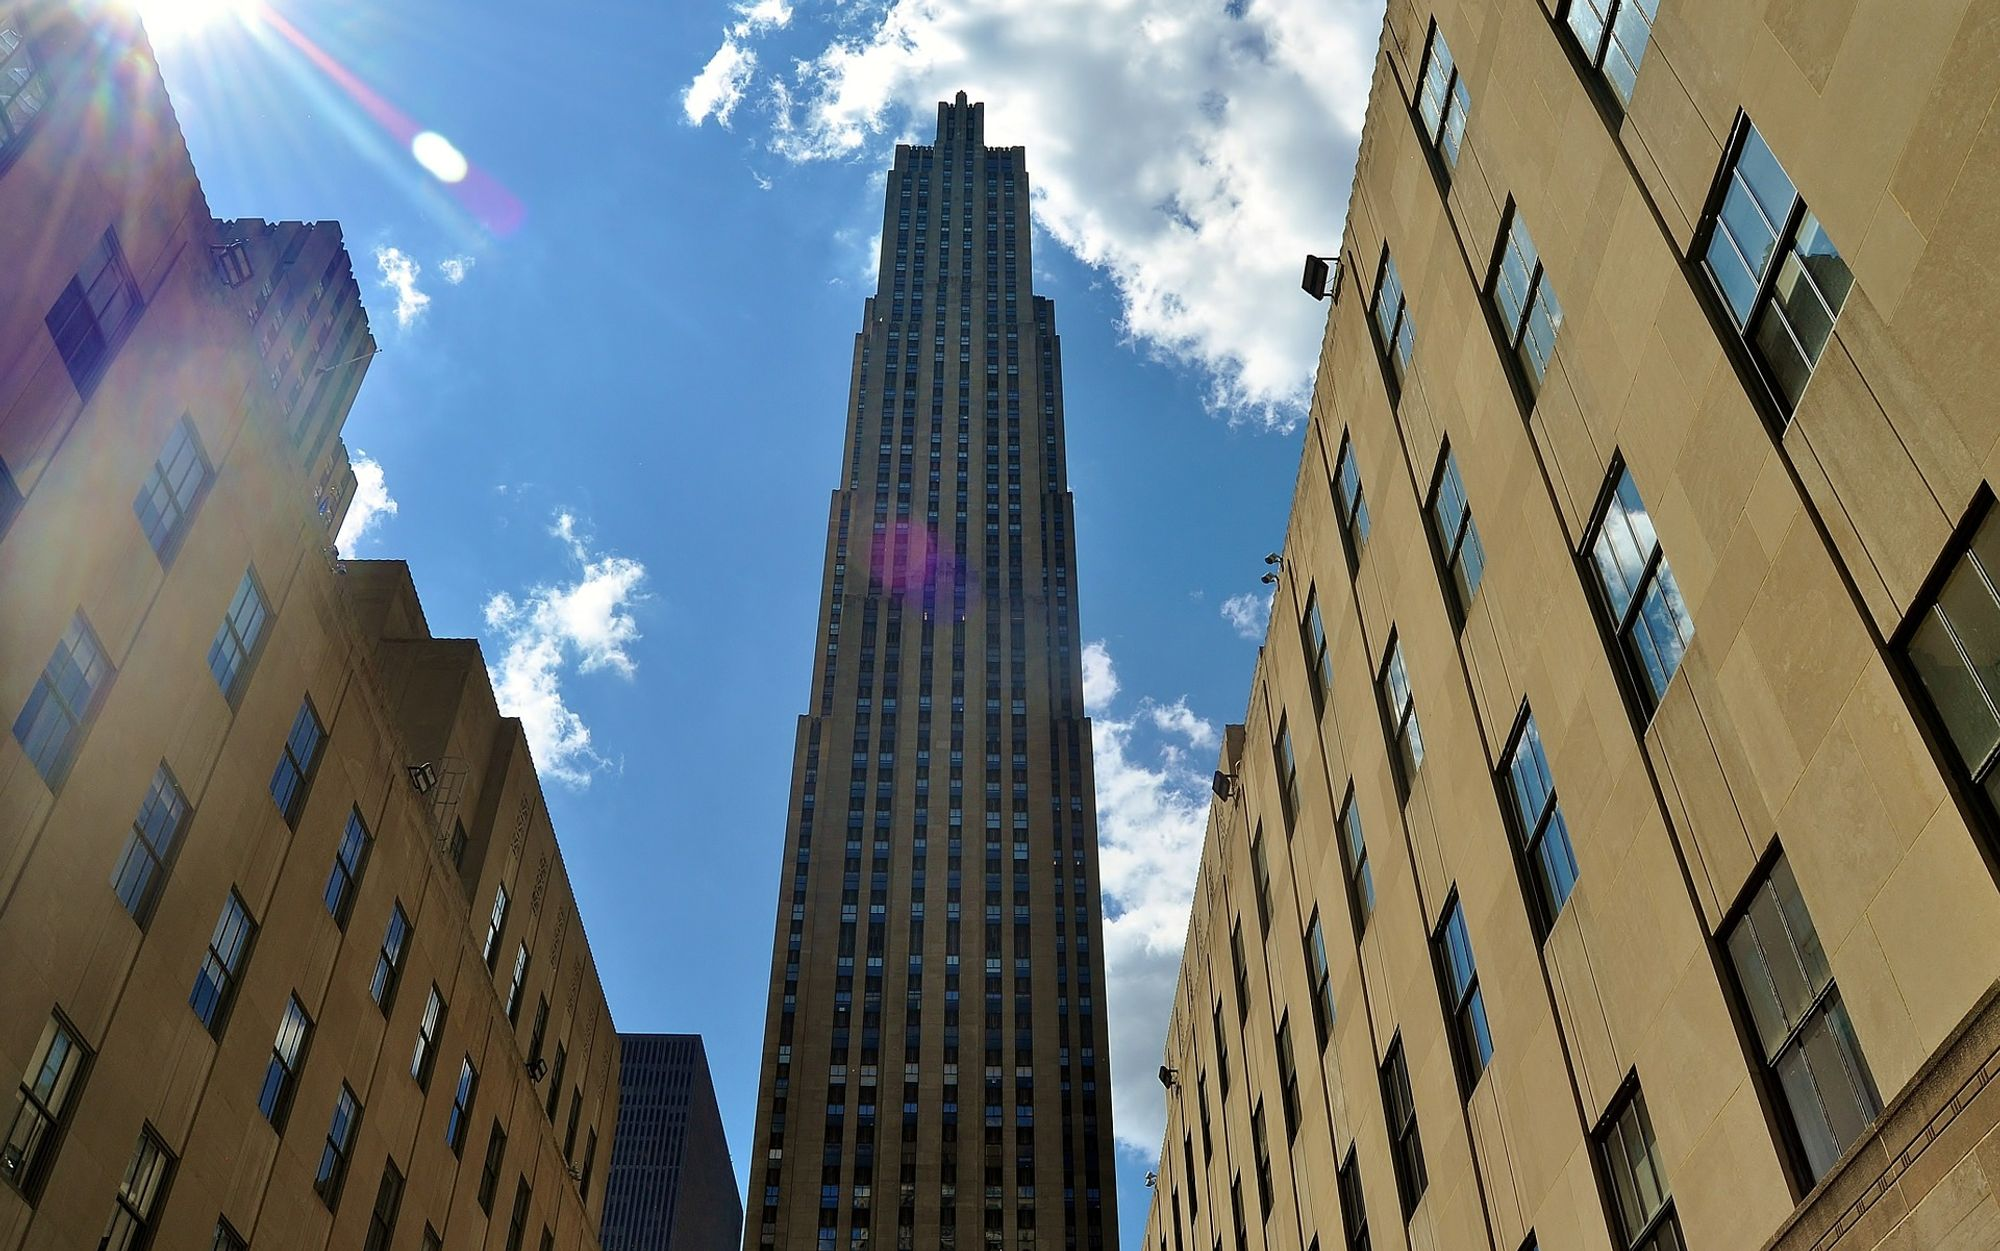 Rockefeller Center in New York - ניו יורק